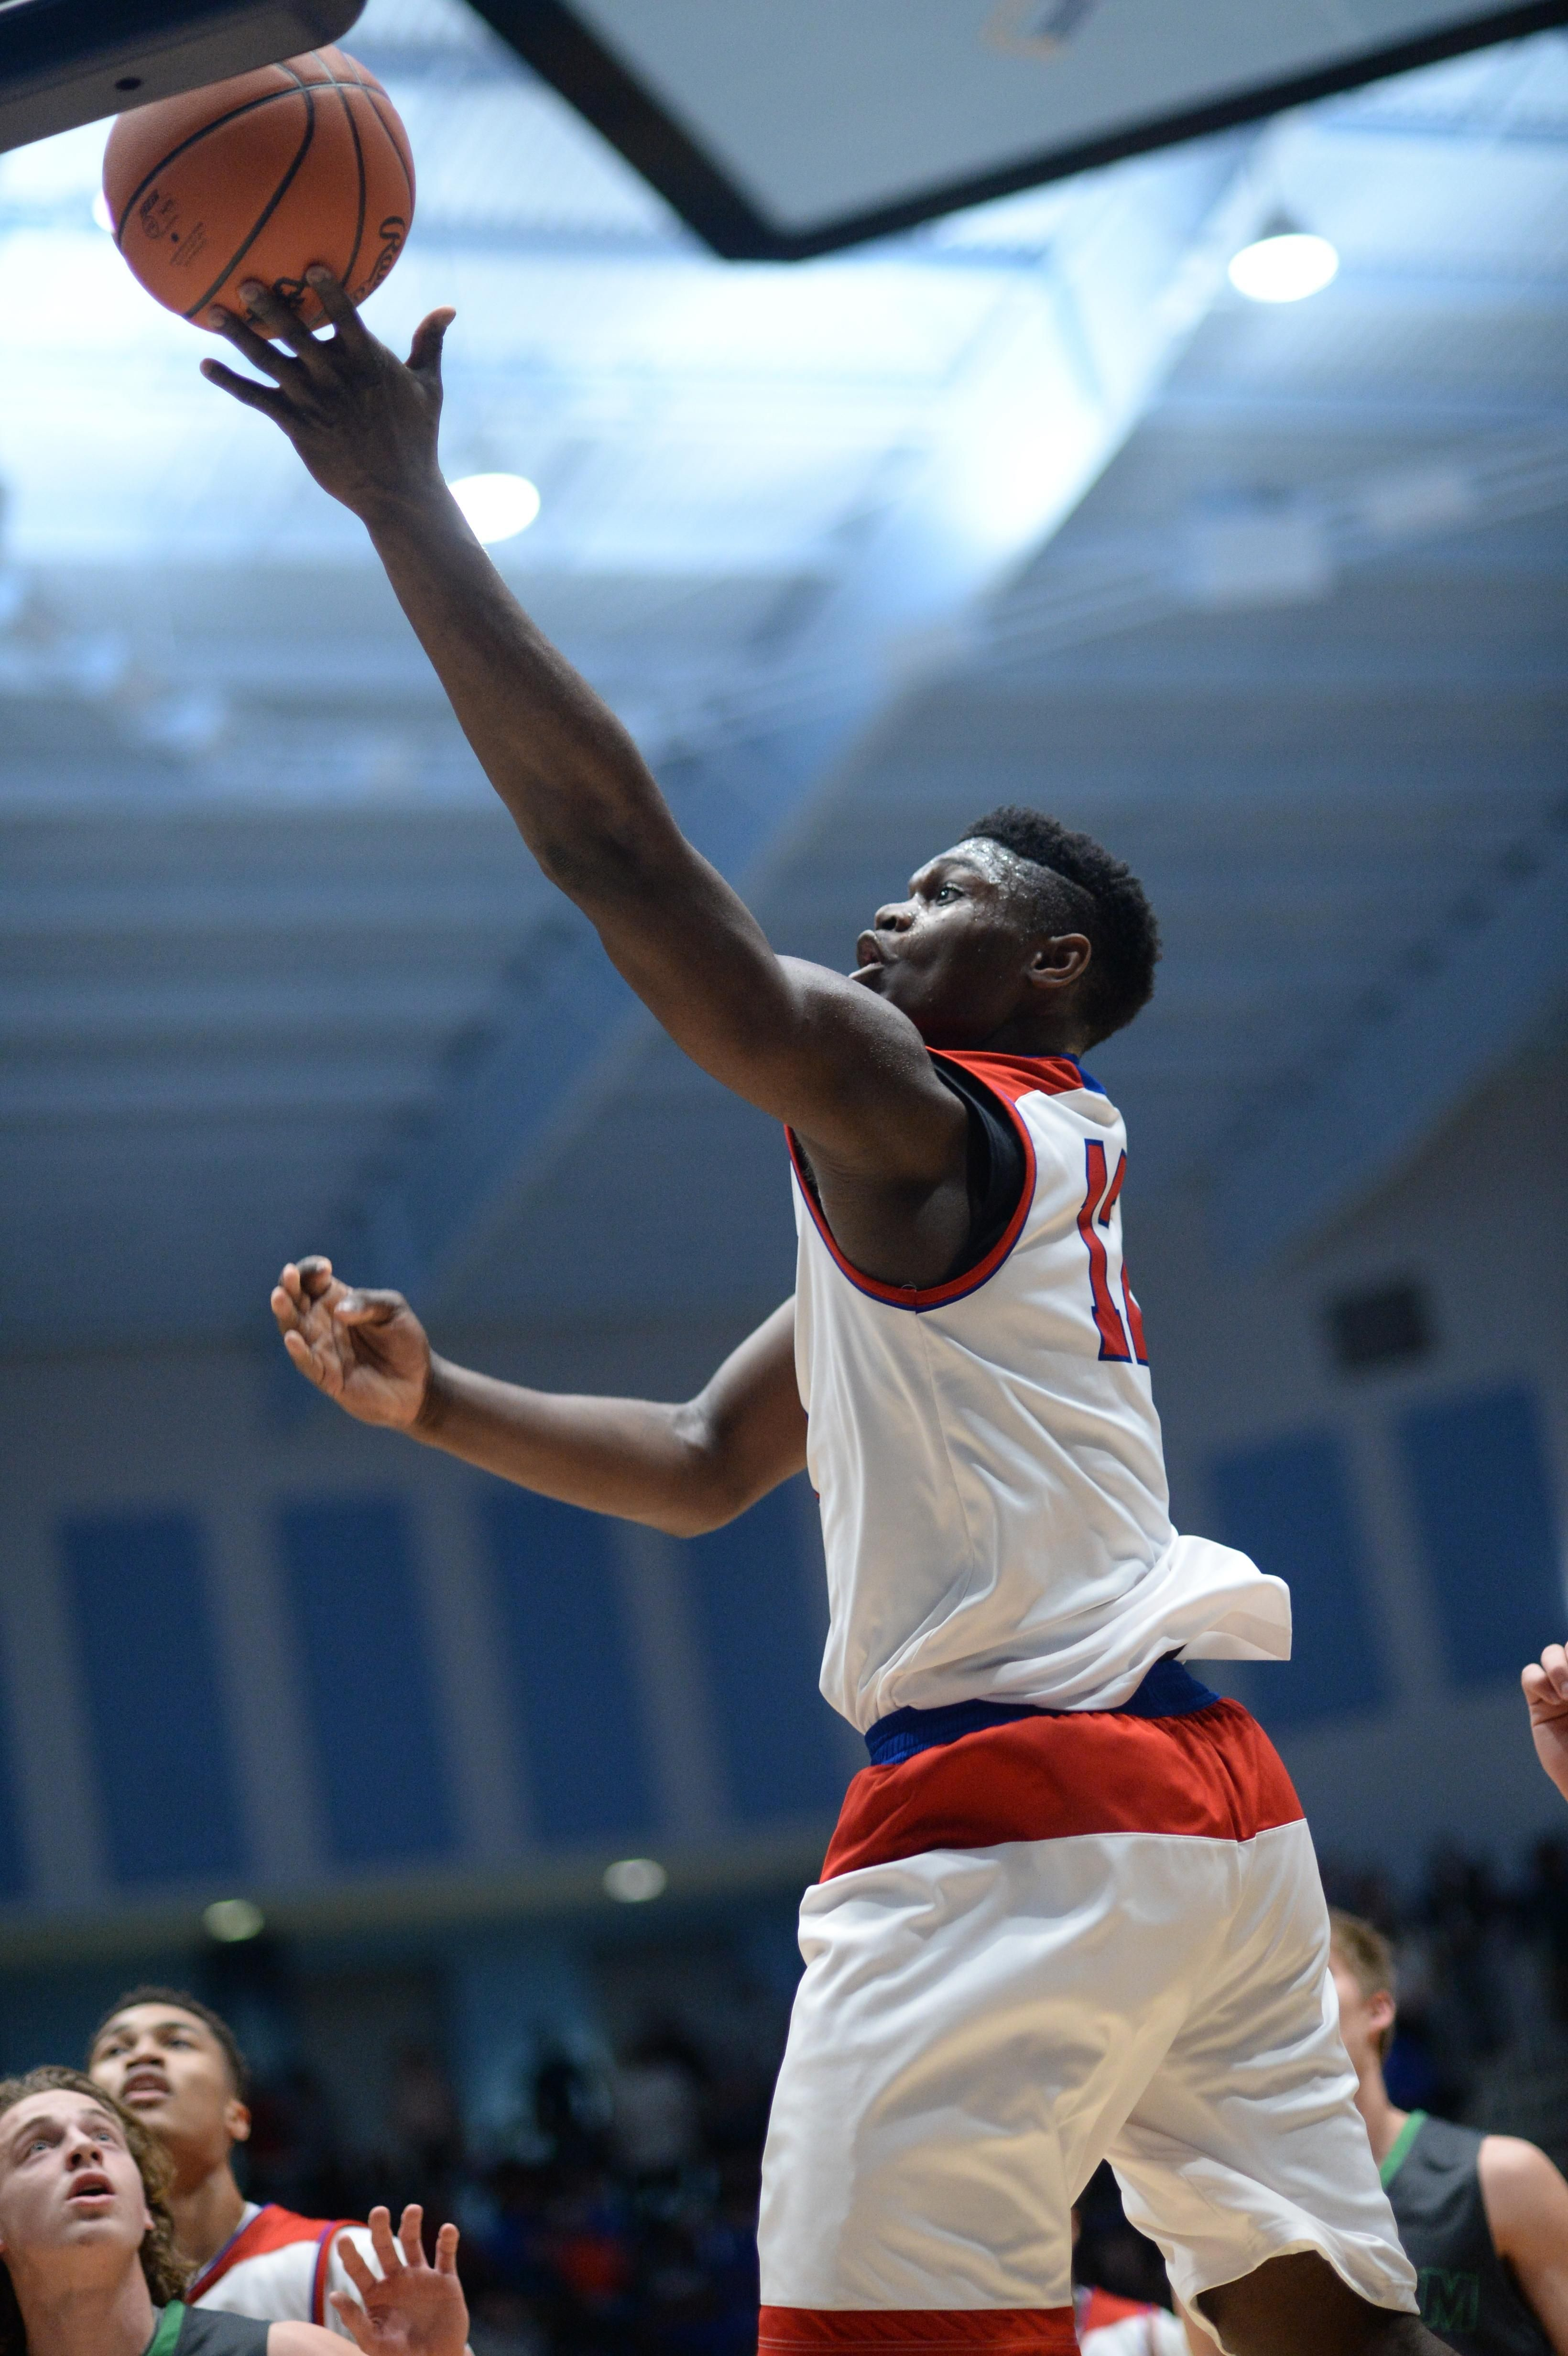 Drake S Favorite Basketball Player Zion Williamson Scored 39 Points In A Show Stopping Opening Act And An Encore Of Relen Nba Pictures Basketball Photos Zion